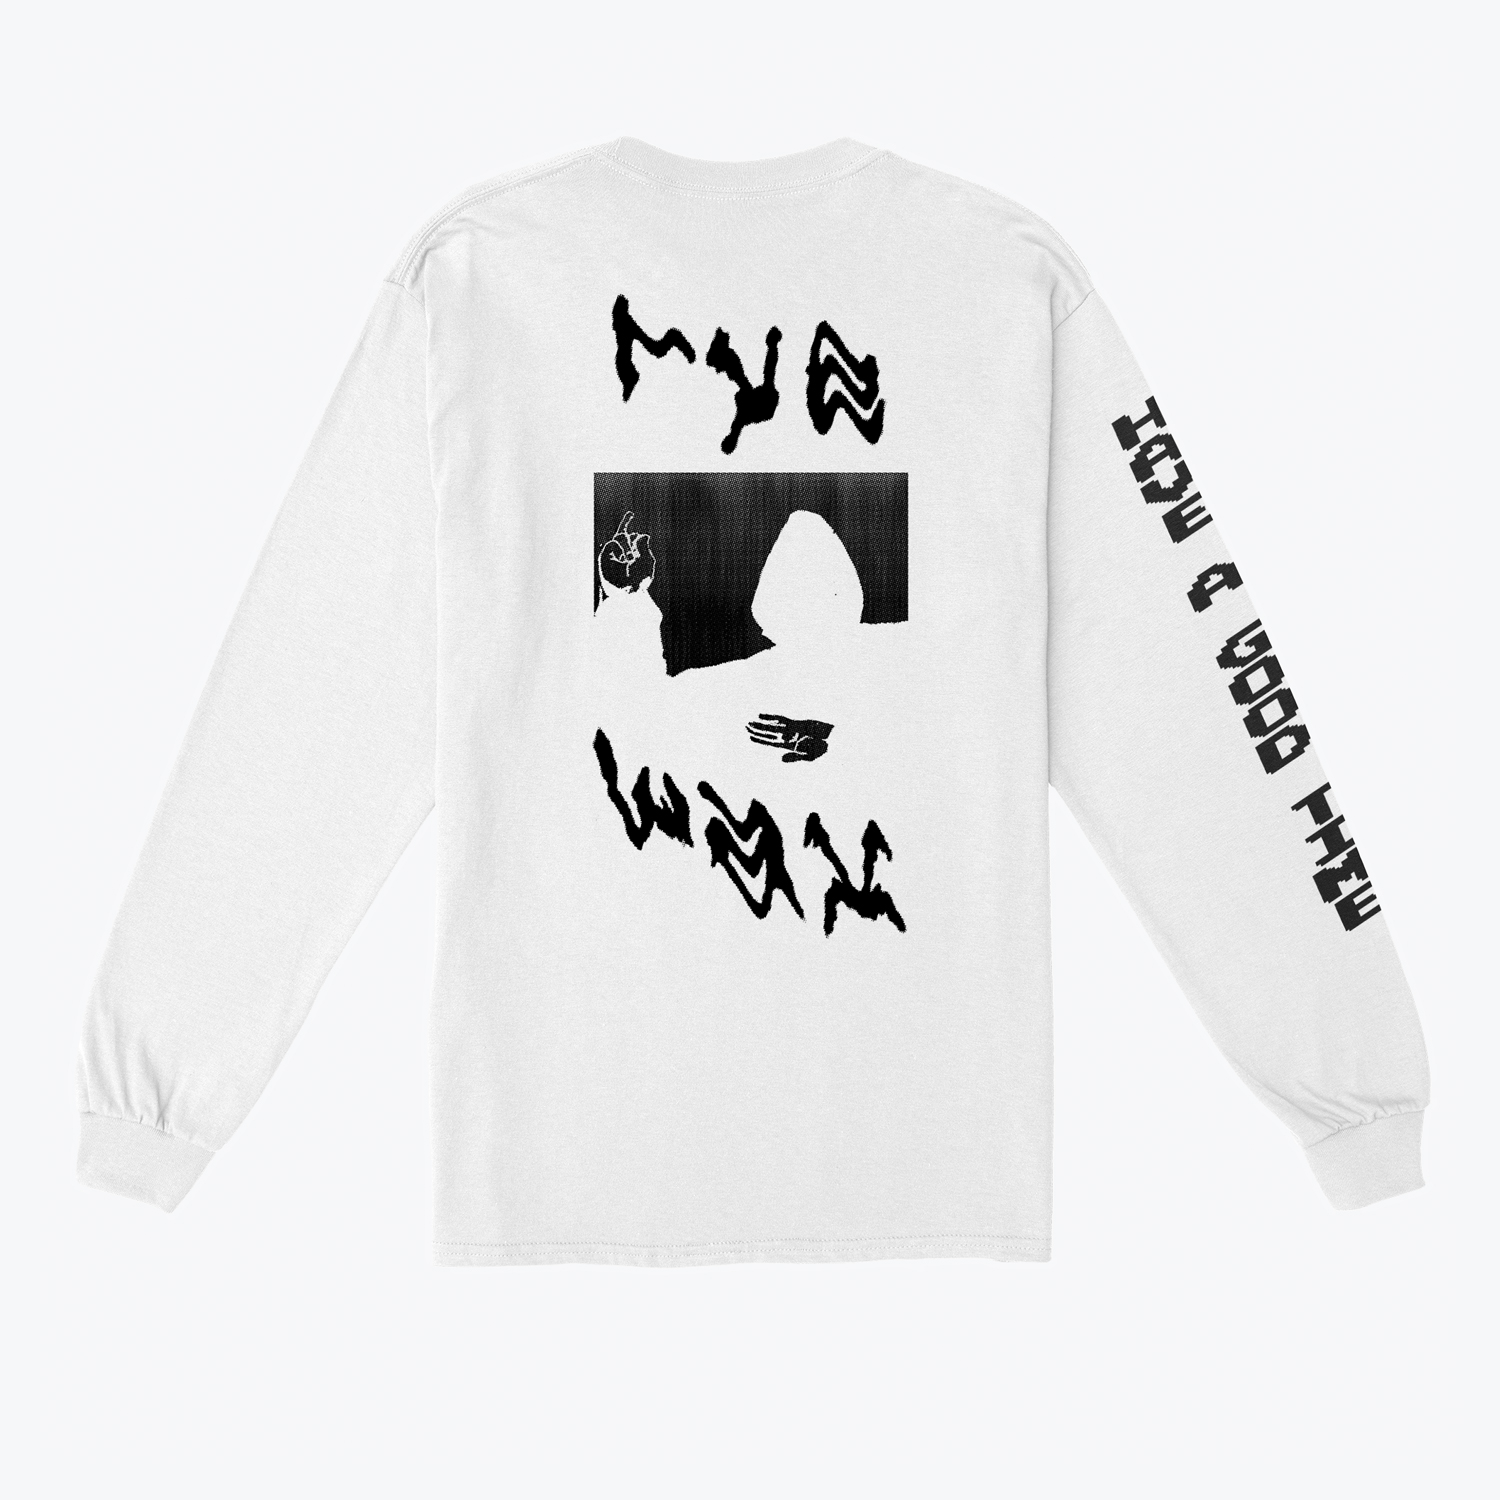 Rye Wax's 'Have-A-Good-Time' T-shirt